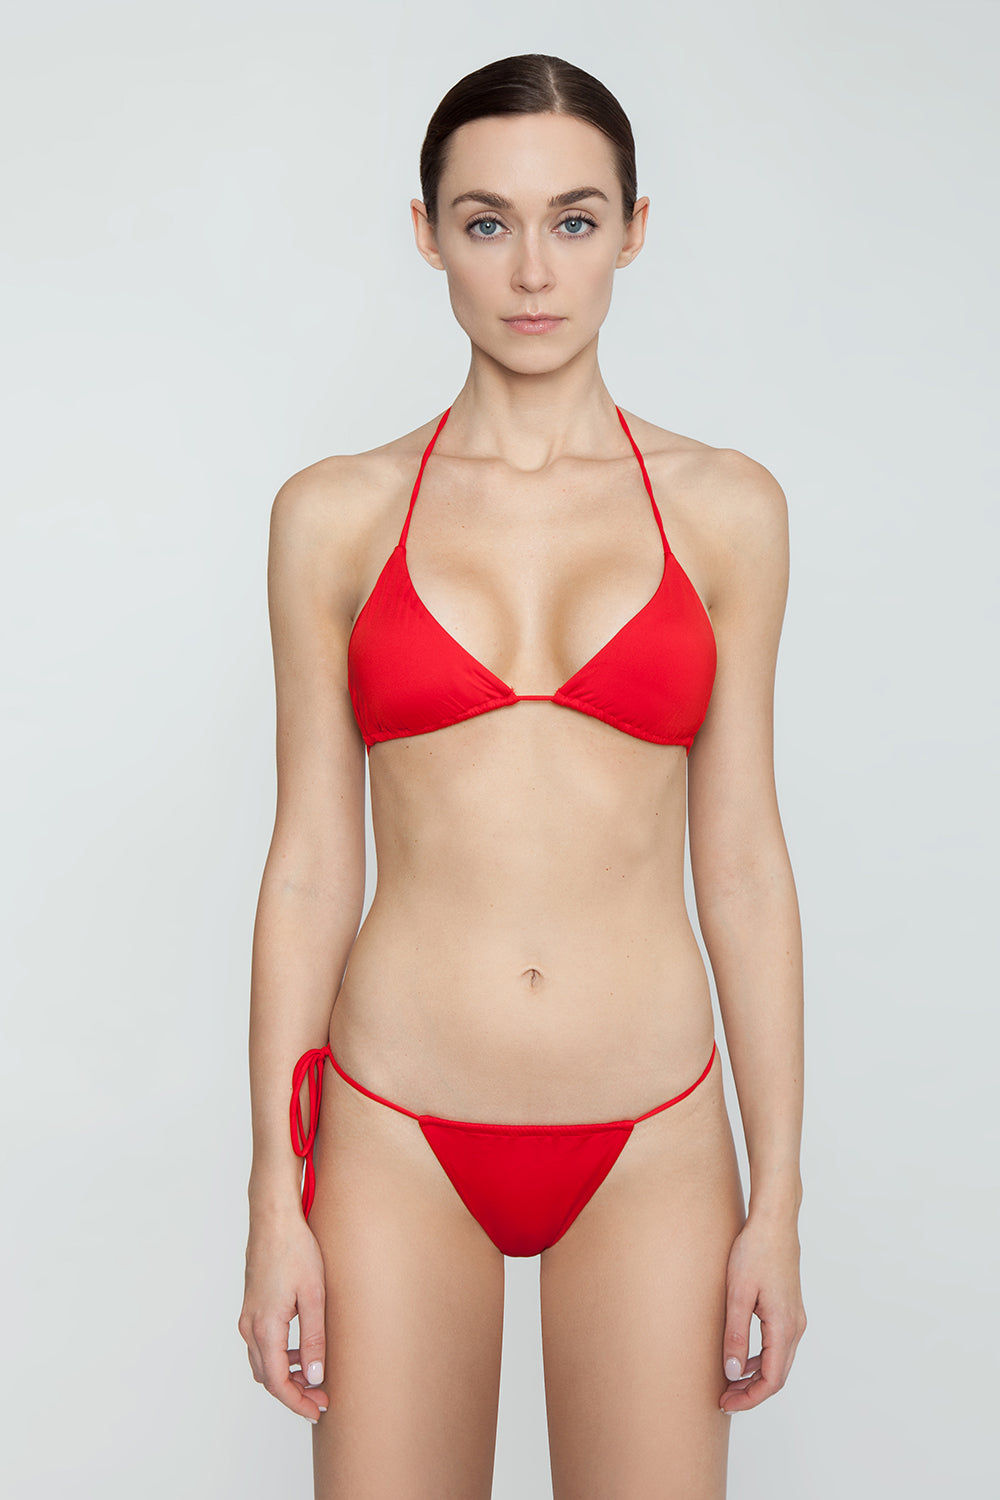 MONICA HANSEN BEACHWEAR That 90's Vibe String Bikini Bottom - Red Bikini Bottom   Red  Monica Hansen That 90's Vibe String Bikini Bottom - Red Single tie side bikini bottom Thin string sides High cut leg  Adjustable coverage in front and back Skimpy to cheeky coverage  Front View